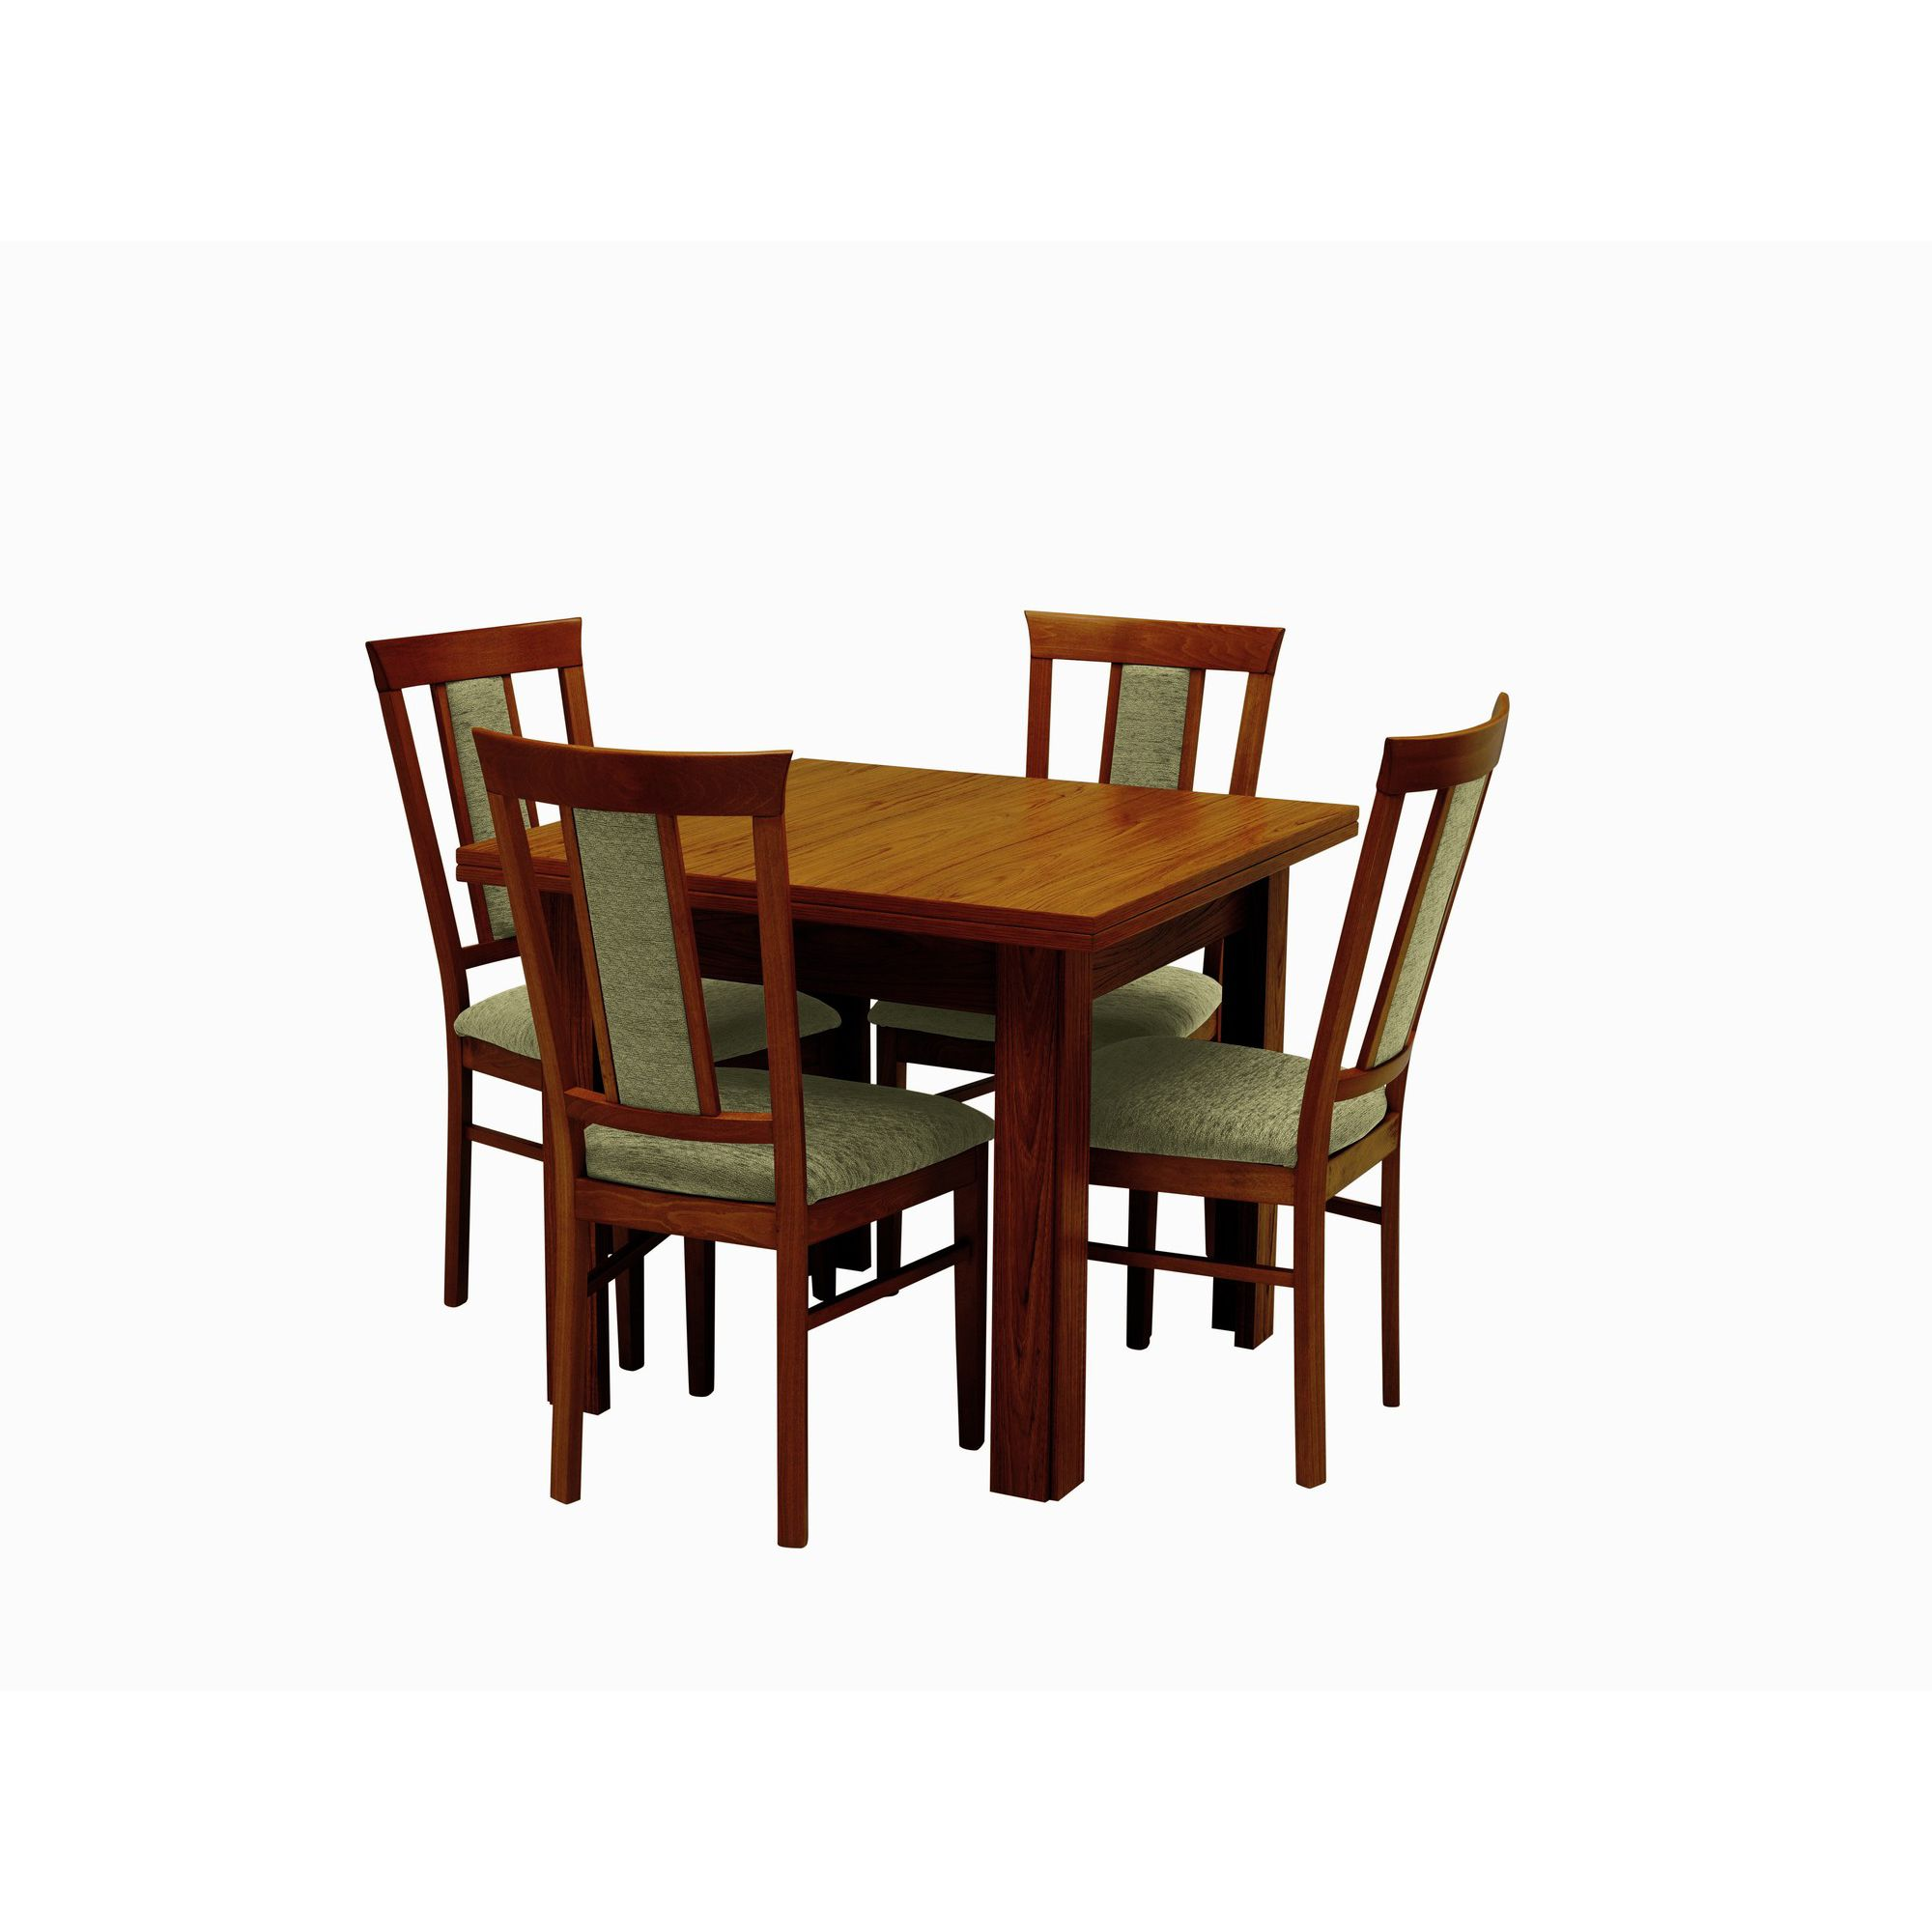 Caxton Byron Extending Dining Set with Padded Back Chairs in Mahogany - Green at Tesco Direct